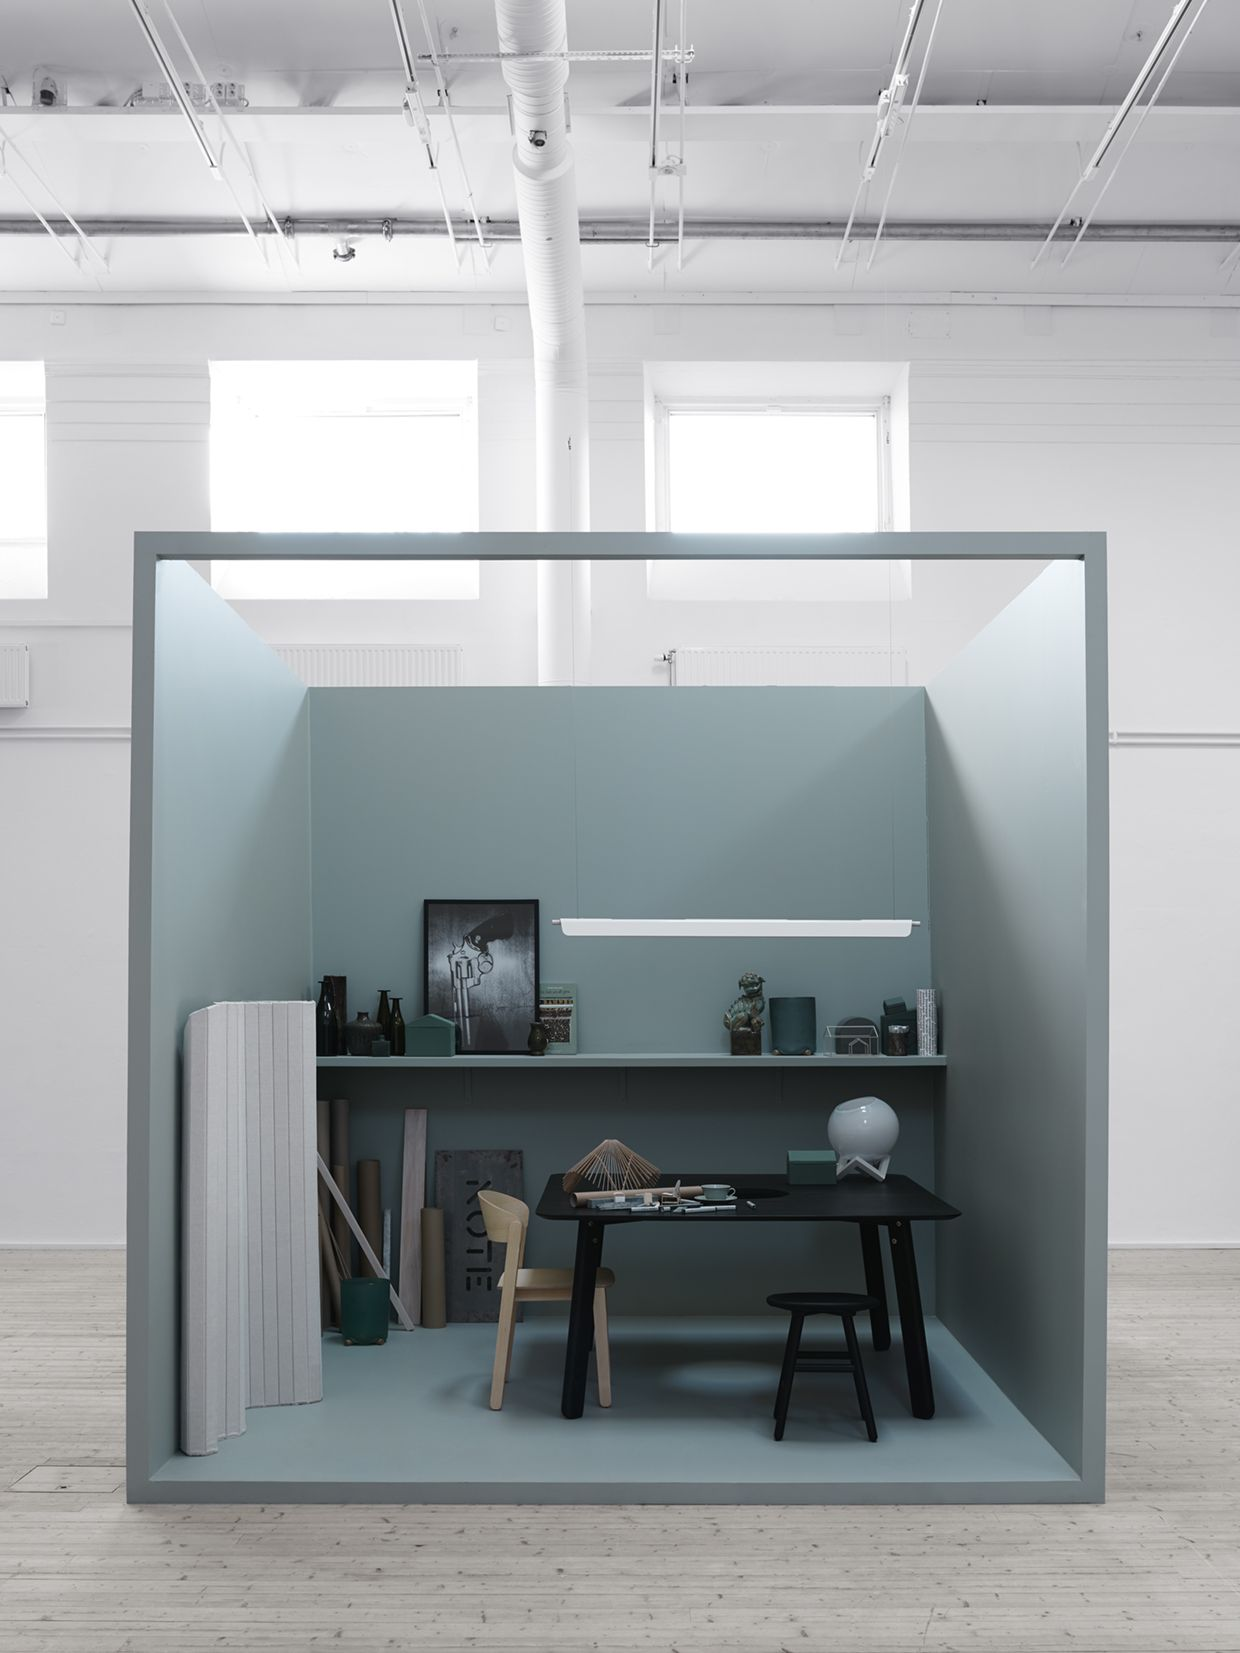 Curated by Lotta Agaton Stockholm Architecture